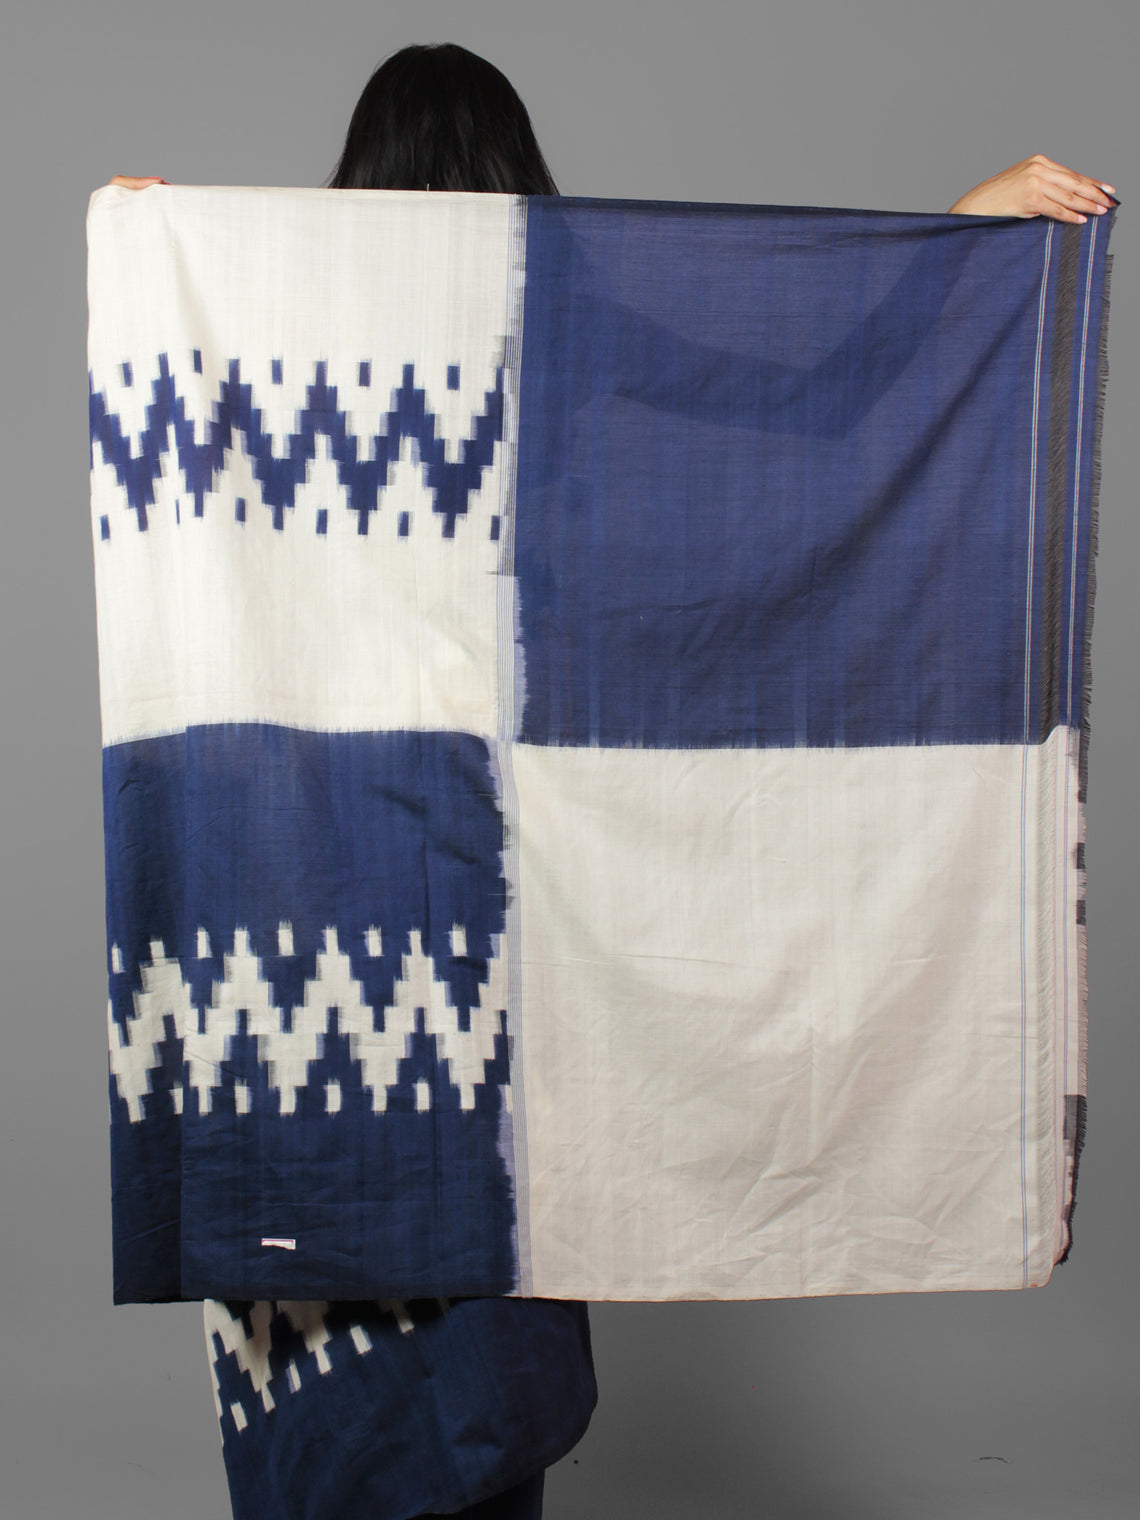 Indigo Ivory Double Ikat Handwoven Pochampally Mercerized Cotton Saree - S031701908